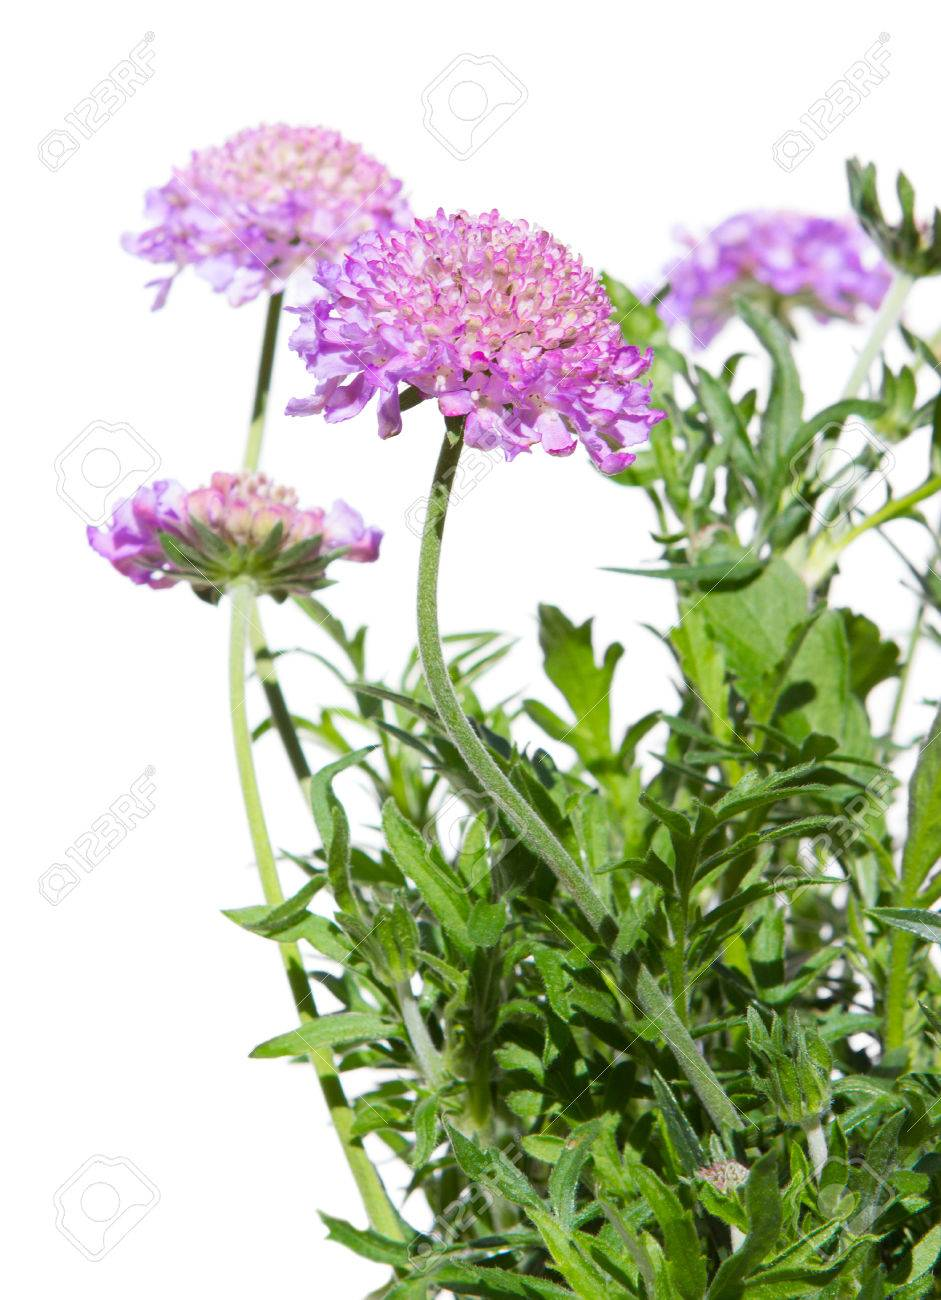 Close Up Of Pincushion Flowers Skabiosa Columbaria On White Stock